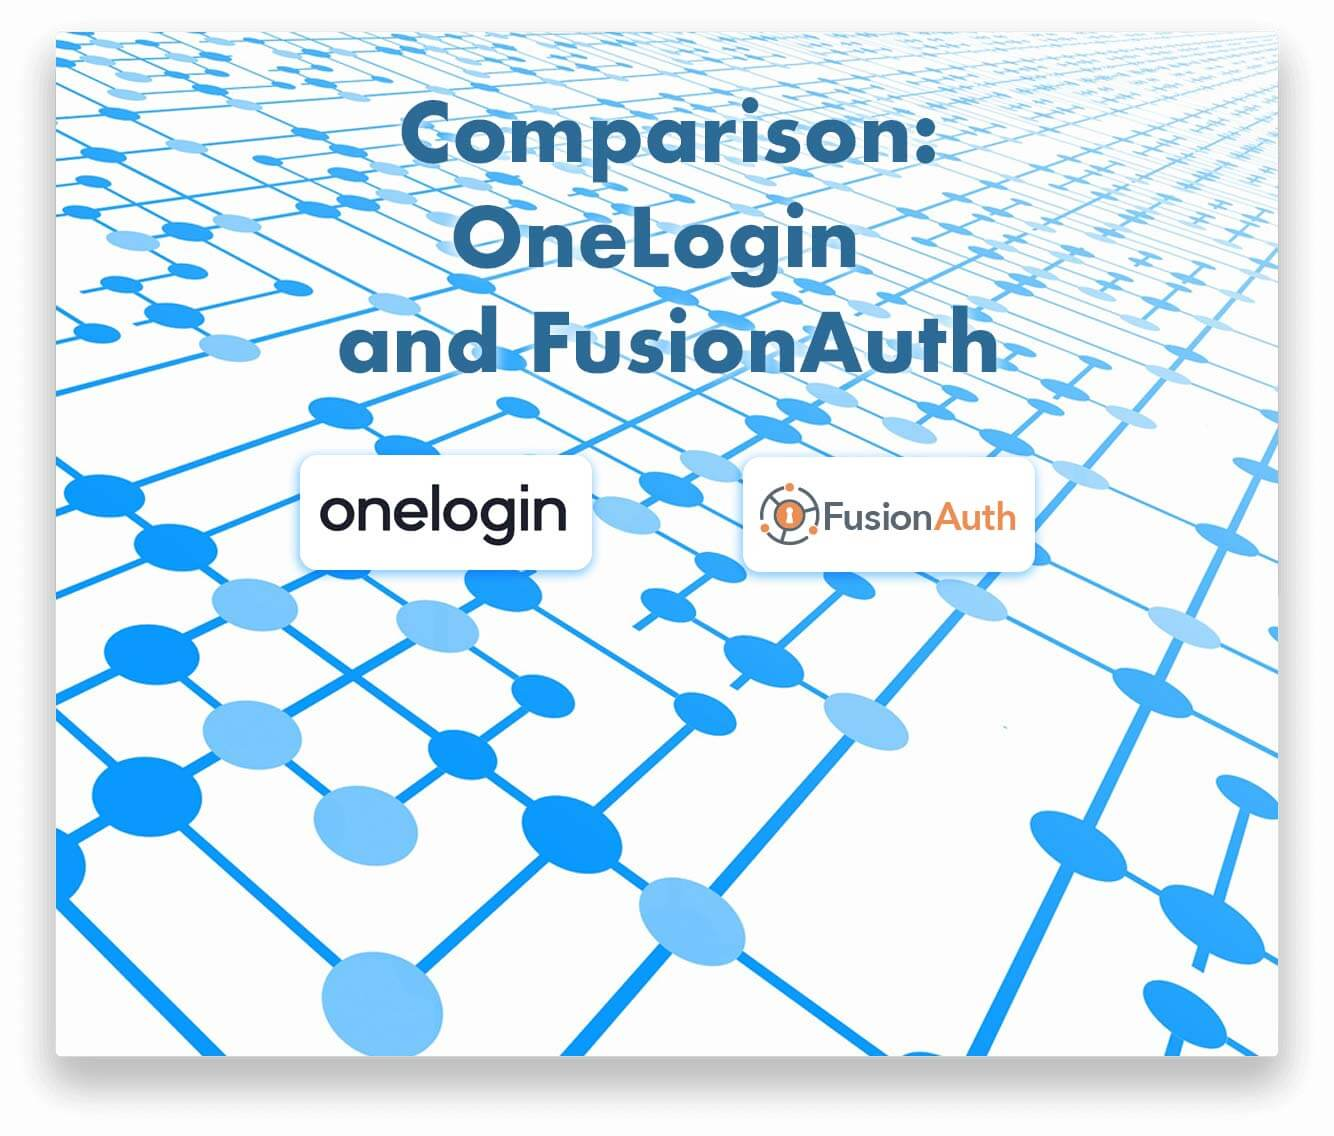 OneLogin and FusionAuth - Different Enough To Make A Difference